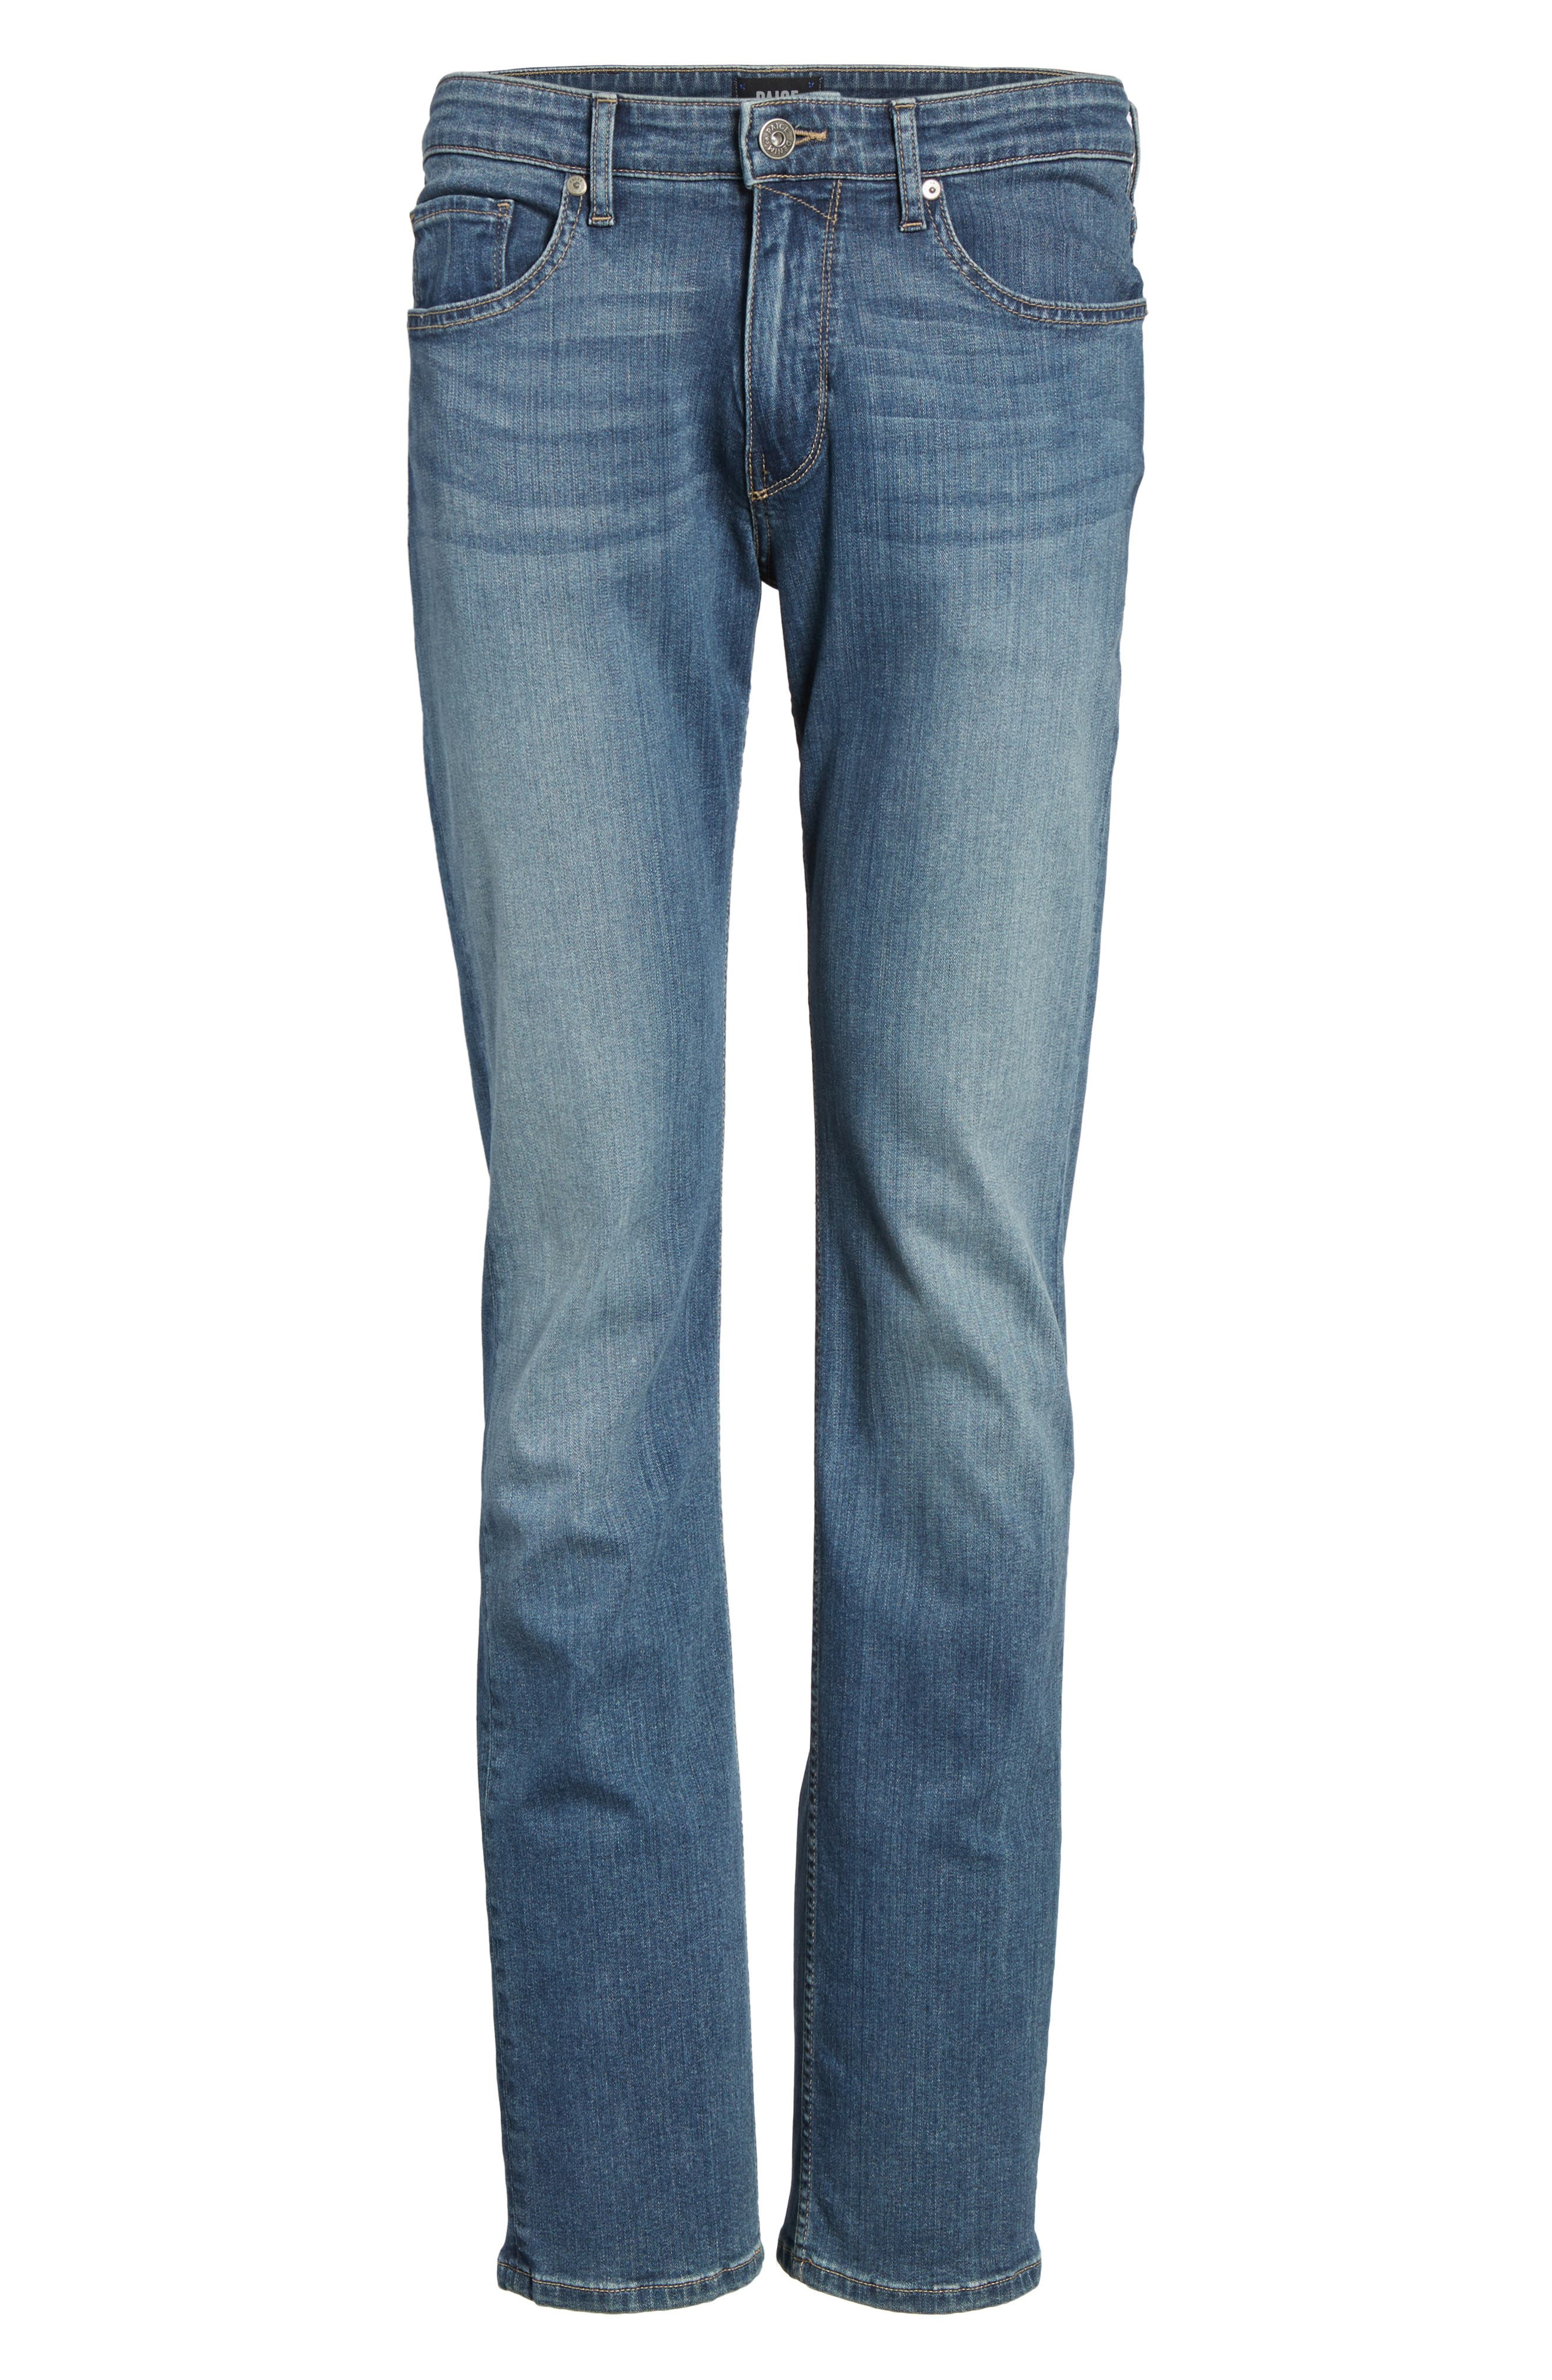 Normandie Straight Fit Jeans,                             Alternate thumbnail 6, color,                             ALMONT